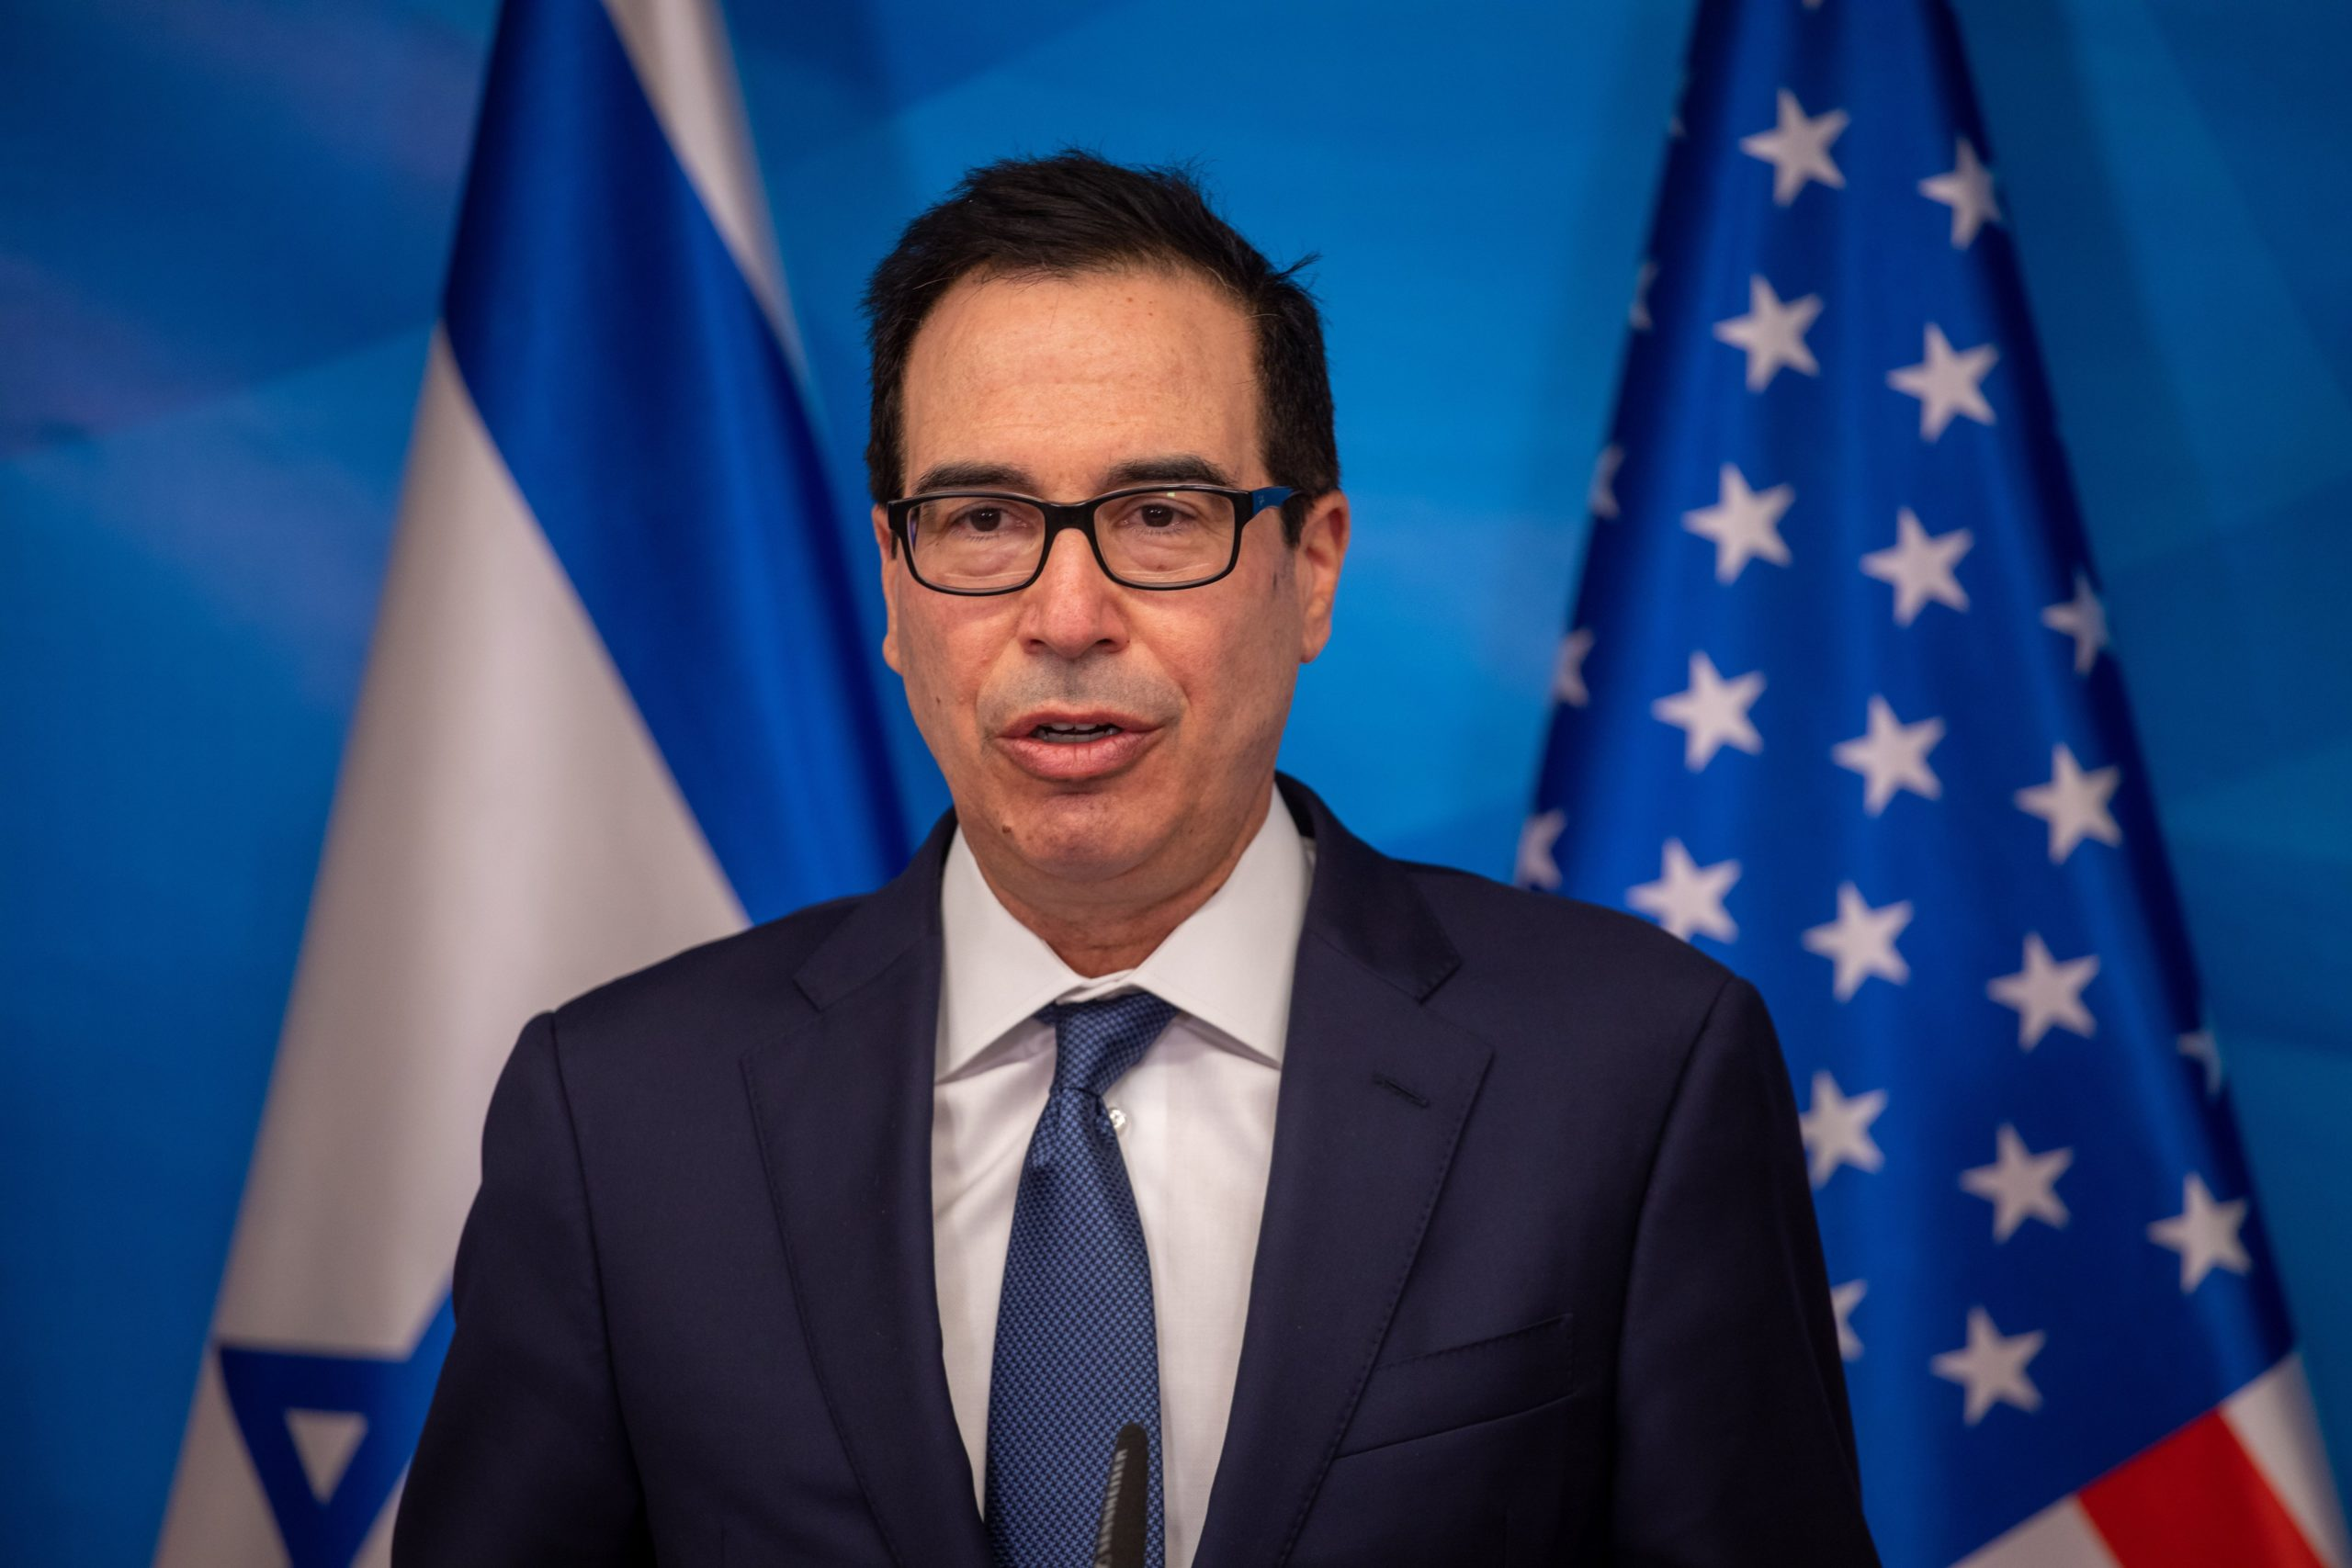 """US Treasury Secretary Steven Mnuchin gives a statement following his meeting meeting with the Israeli prime minister in Jerusalem, on January 7, 2021. - Israeli Prime Minister Benjamin Netanyahu condemned as """"disgraceful"""" violence by supporters of his staunch ally President Donald Trump at the US Capitol building. He made the comments in Jerusalem alongside Munchin, who called the storming of the Capitol """"unacceptable"""". (Photo by EMIL SALMAN/POOL/AFP via Getty Images)"""